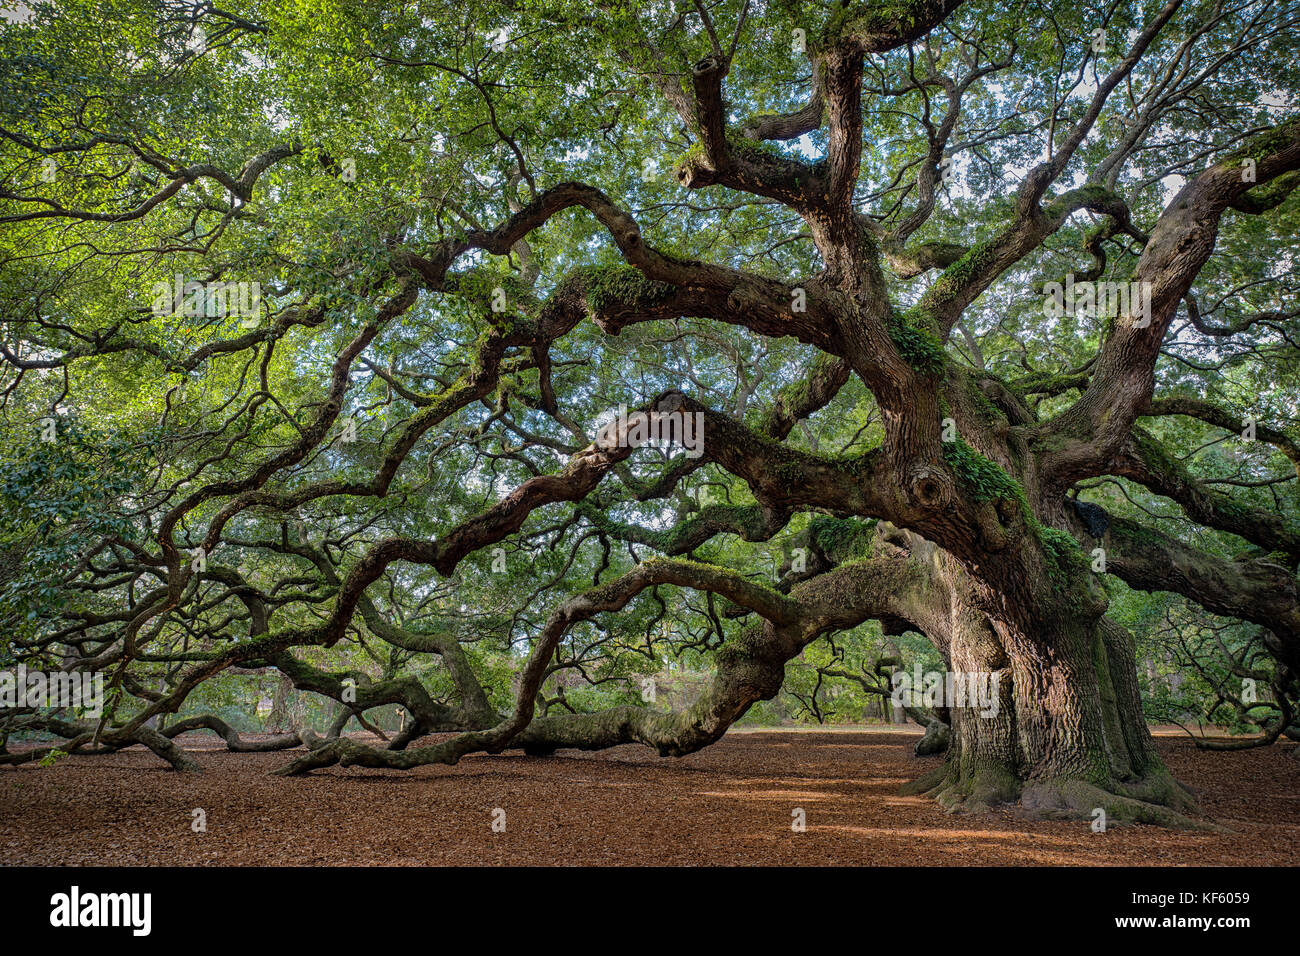 Angel Oak Tree is a Southern live oak (Quercus virginiana